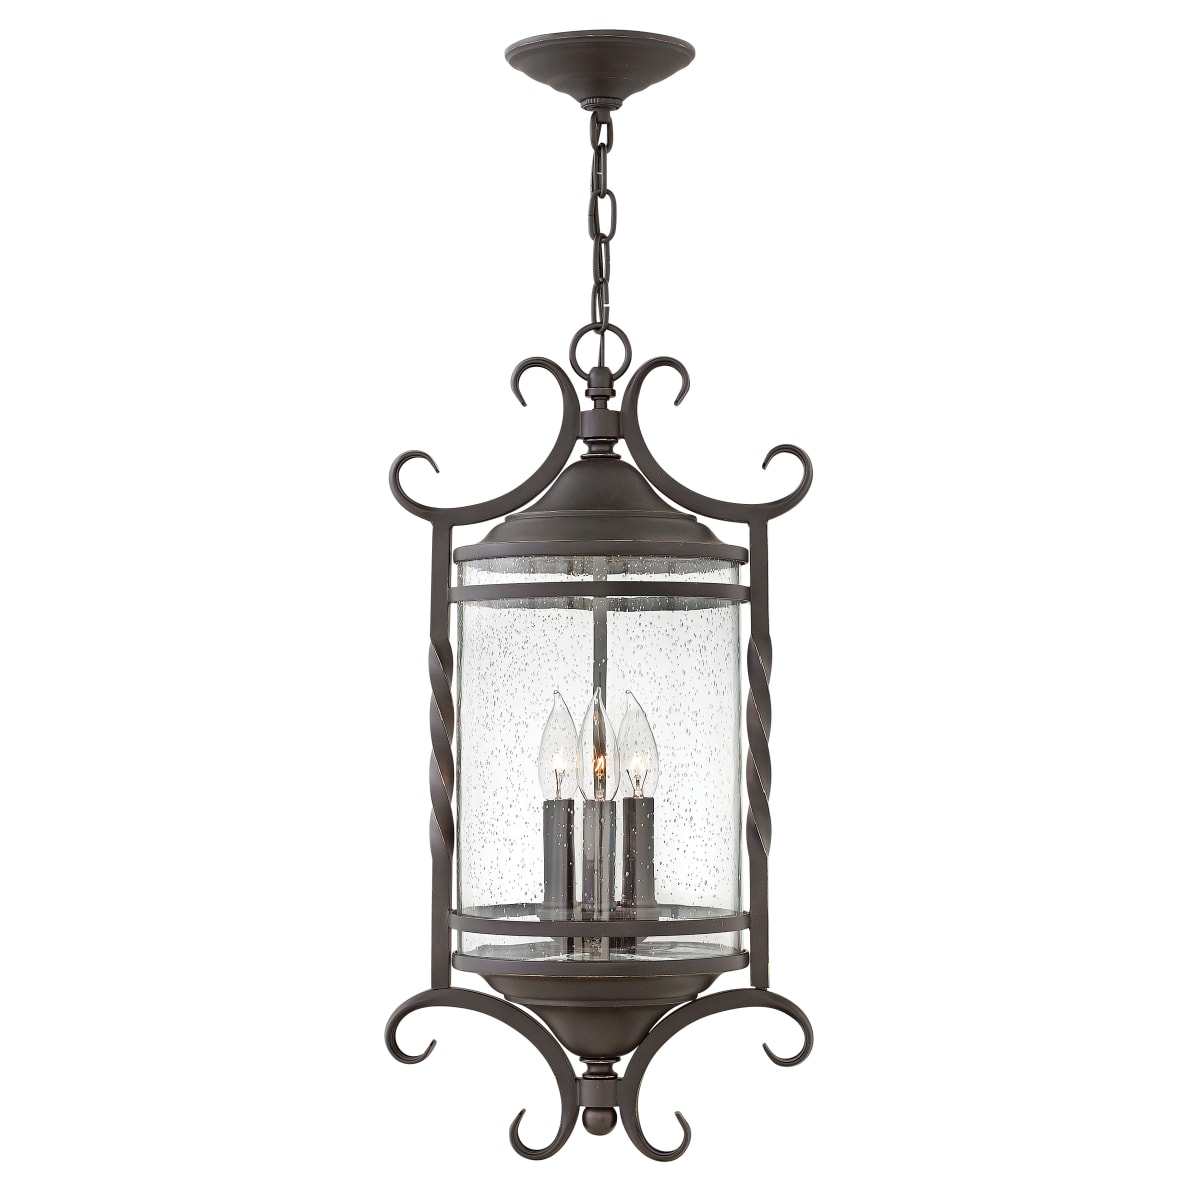 Hinkley Lighting 1147ol Cl Olde Black Casa 3 Light 12 Wide Wrought Iron Outdoor Pendant With Seedy Glass Shade Lightingdirect Com